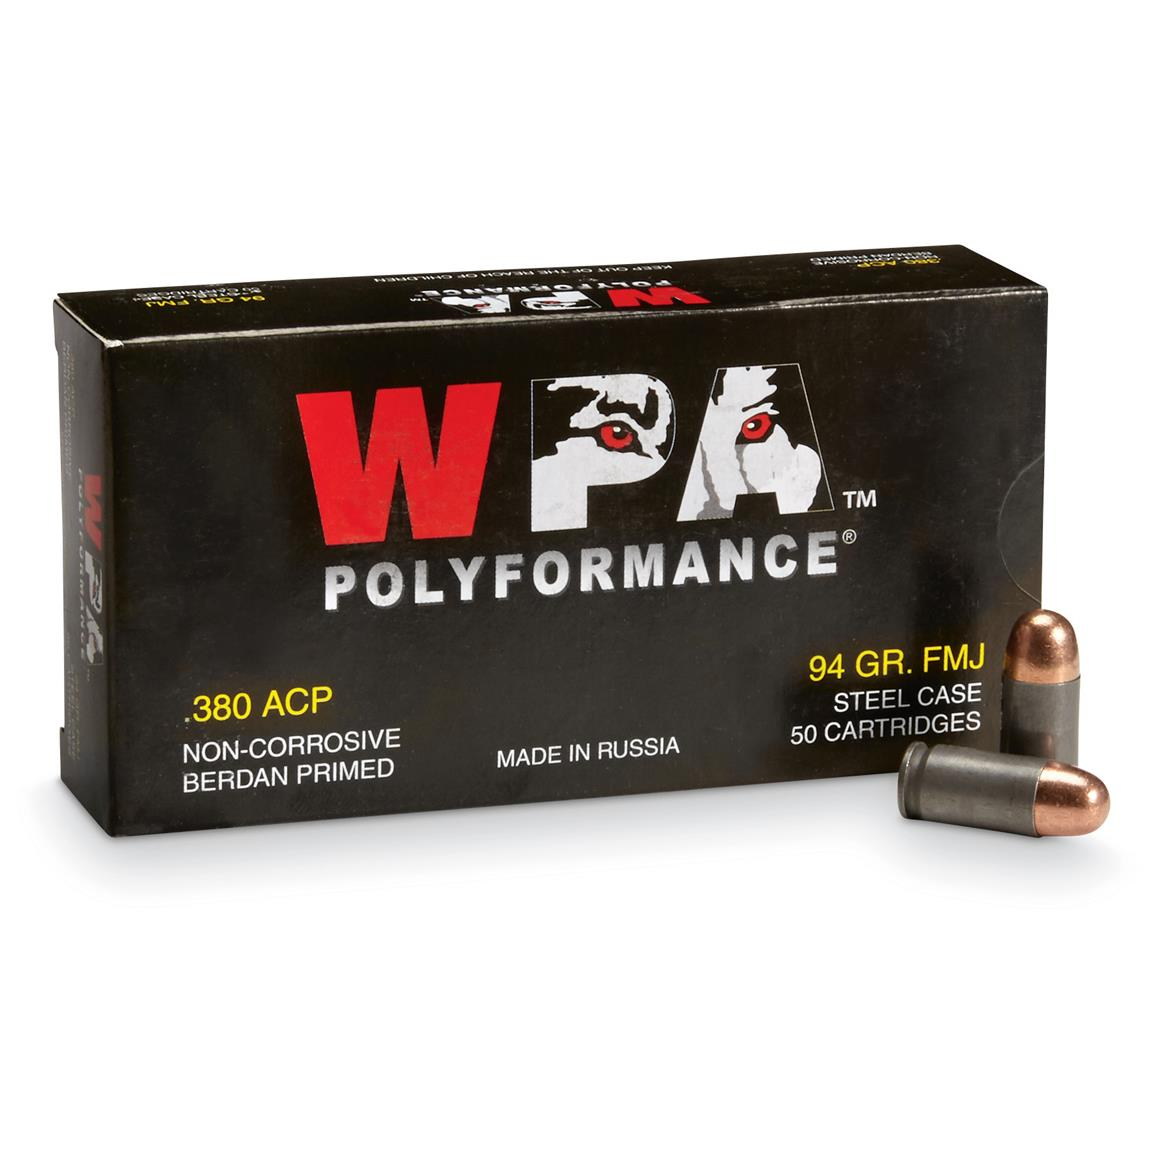 WPA Polyformance, .380 Auto, FMJ, 94 Grain, 500 Rounds